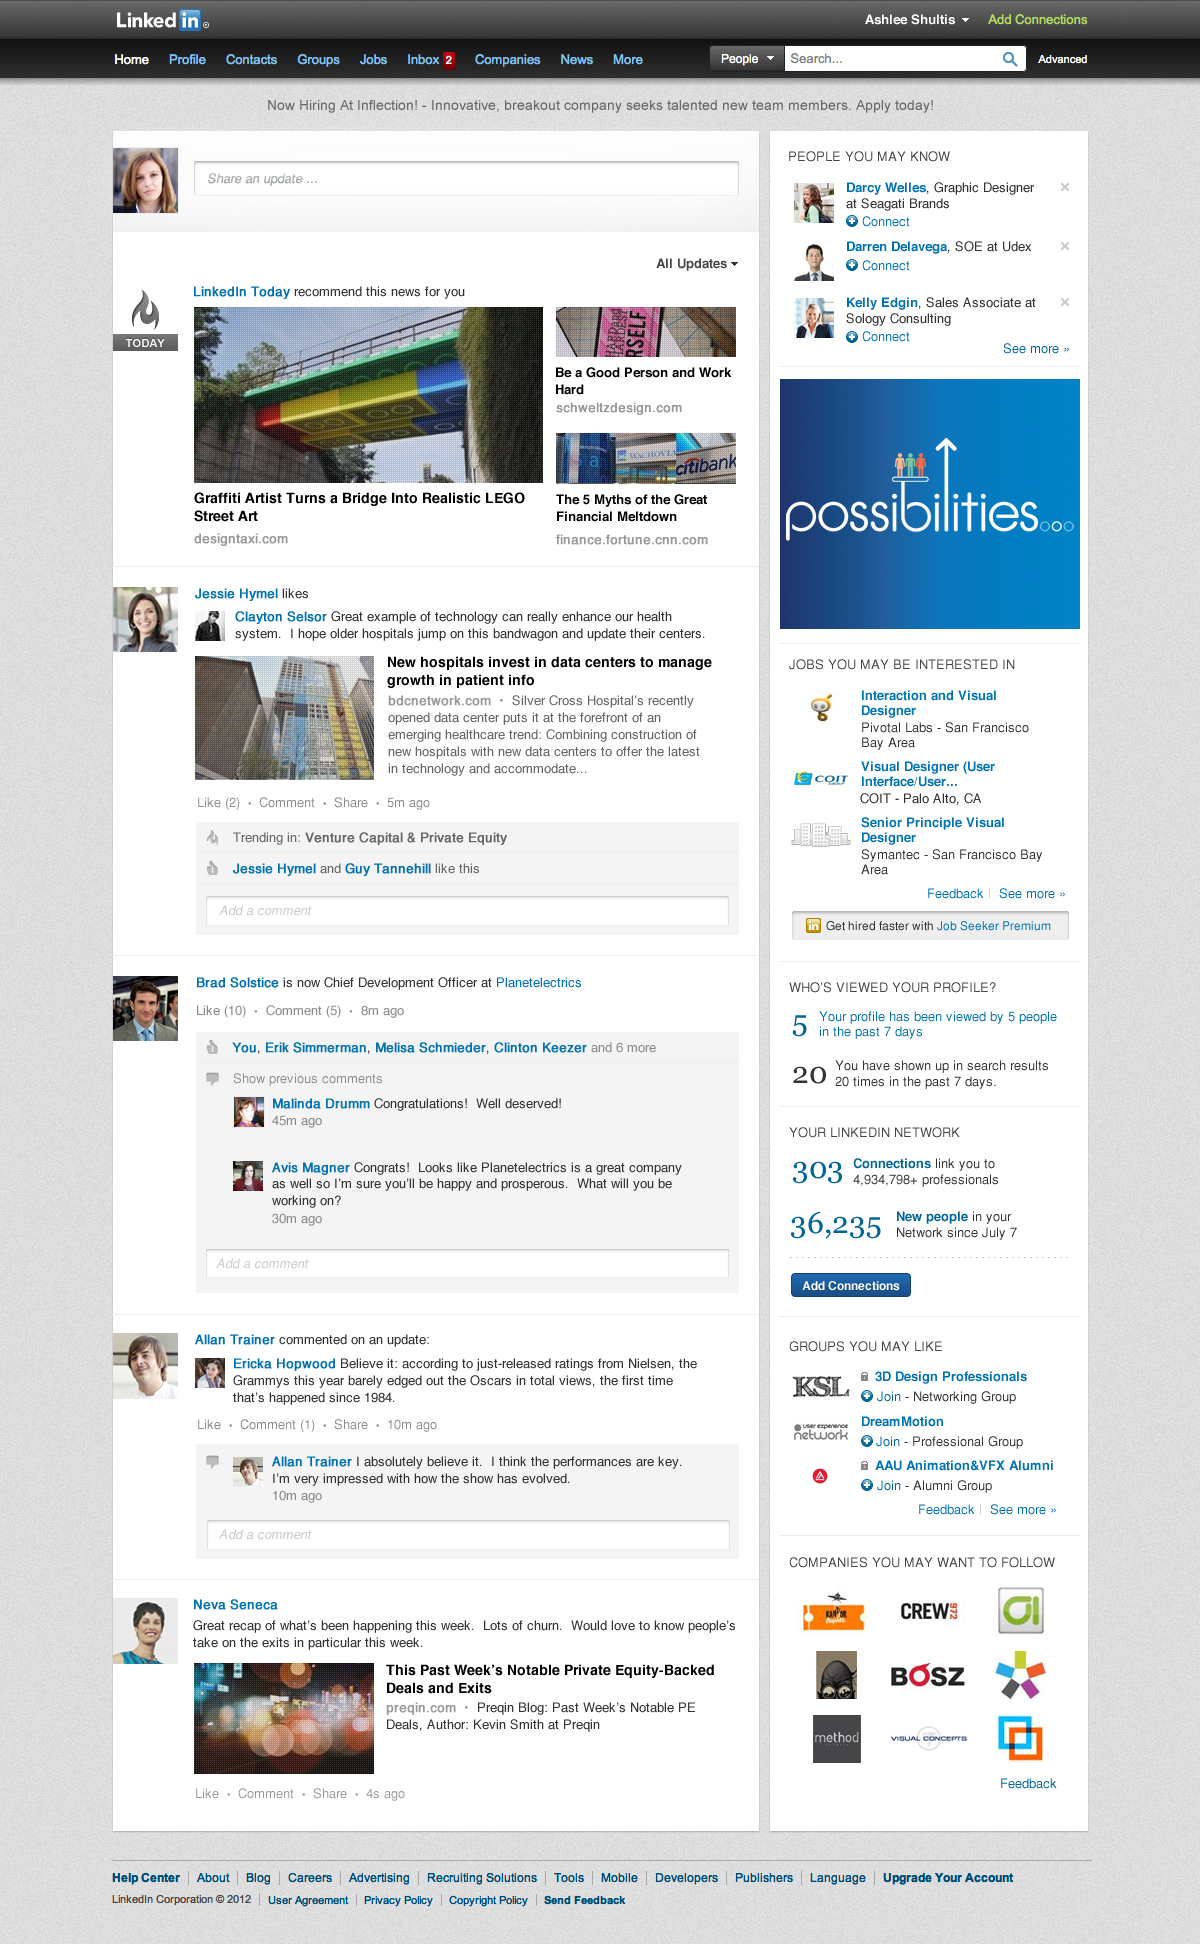 Introducing a Simpler Homepage | Official LinkedIn Blog